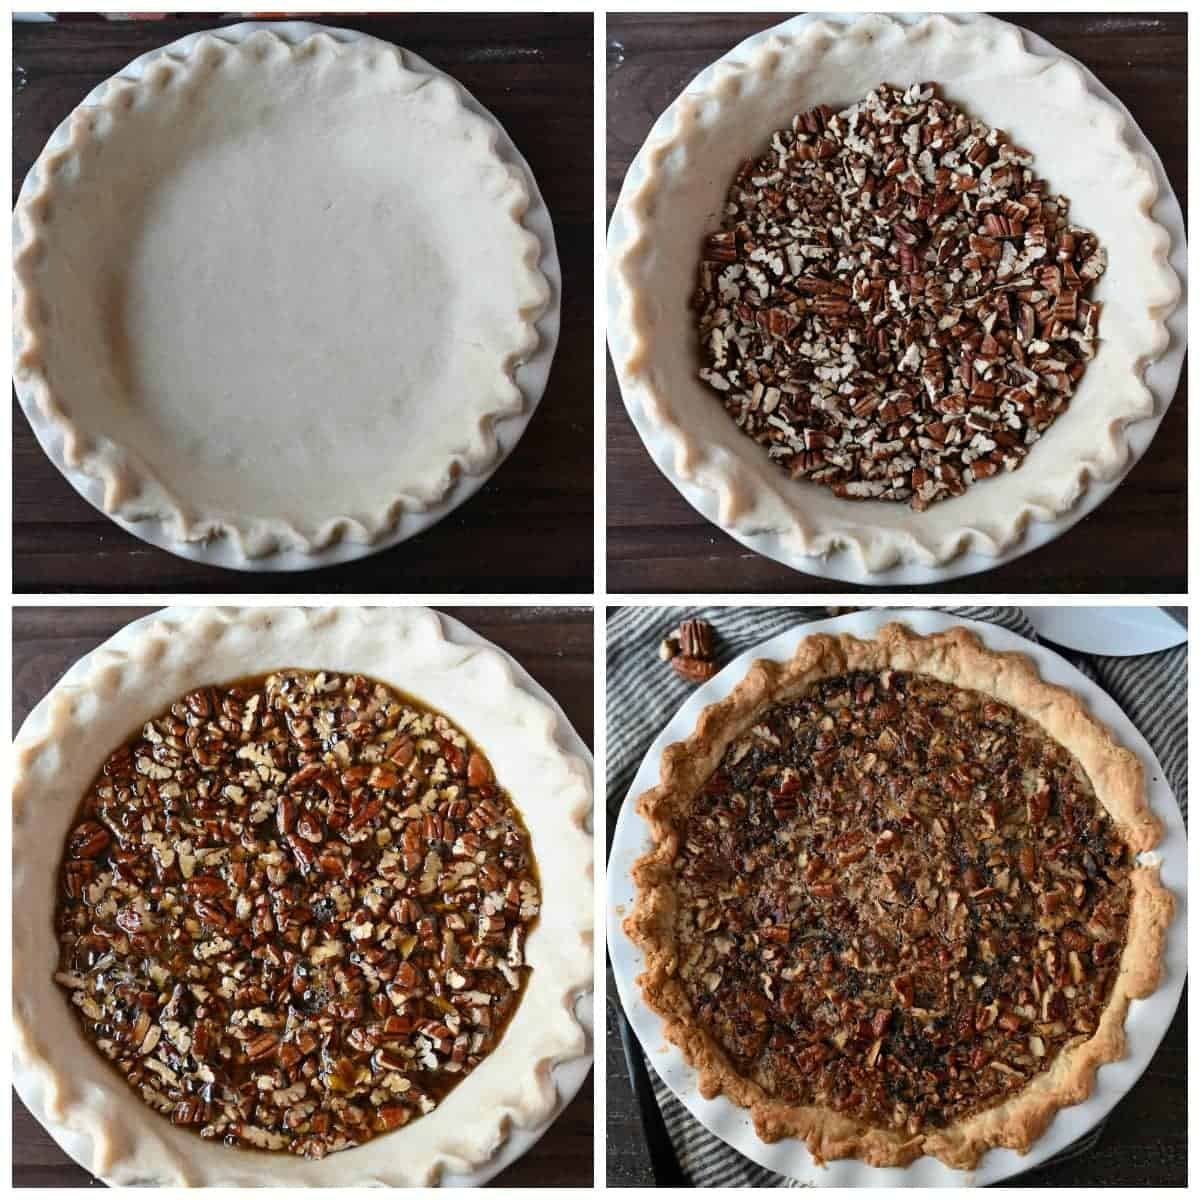 Dough placed in a pie dish and edges pinched. Second one, roasted pecans placed into the bottom. Third one, wet mixture poured on top of the pecans. Fourth one, freshly baked pecan pie out of the oven.